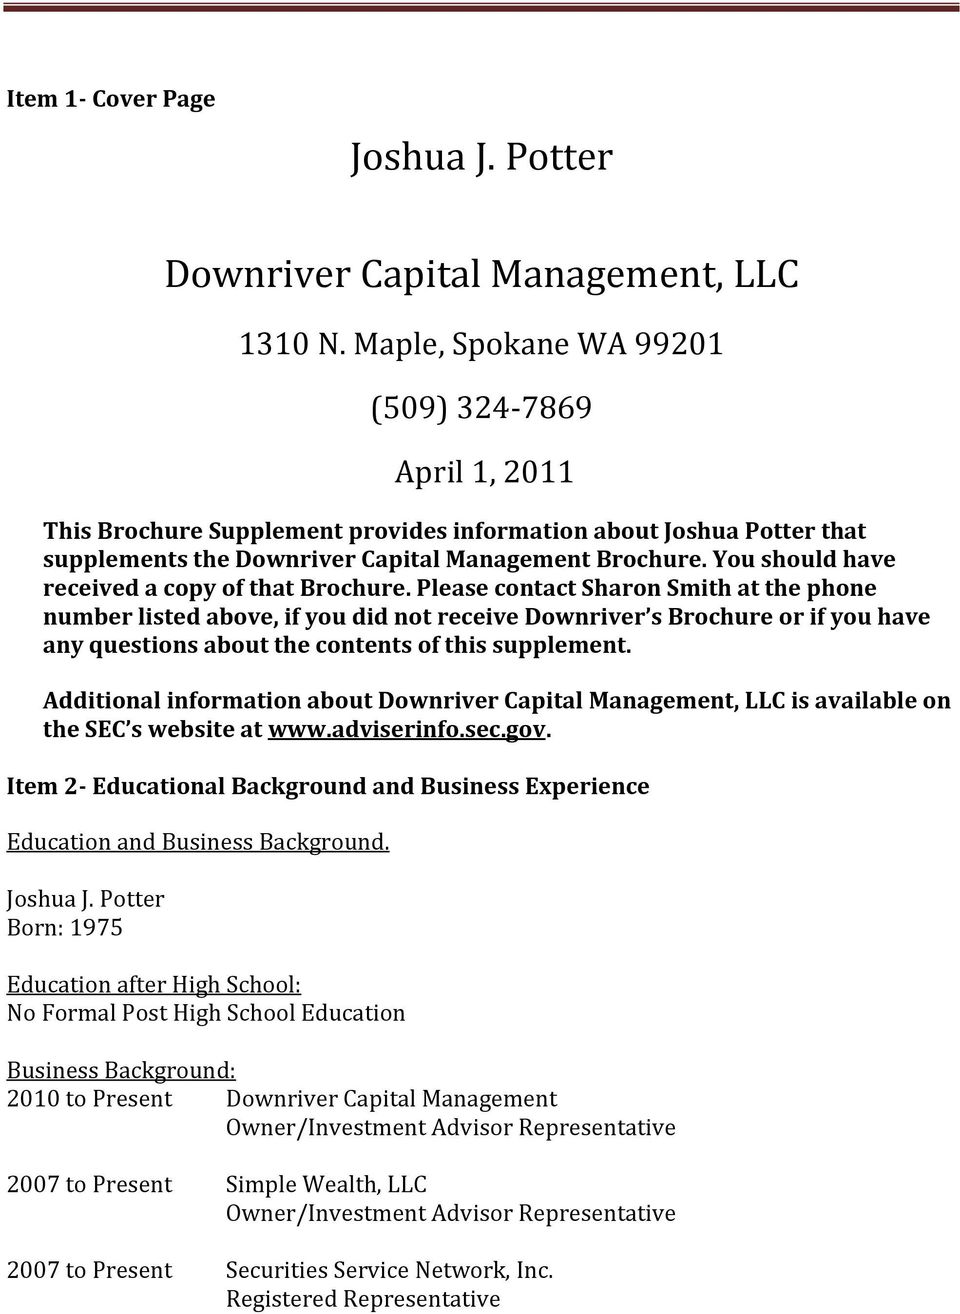 William K Lang Downriver Capital Management Llc Pdf Free Download Lover, i don't know, a ruined view of heaven, the siren's call, these crazier times, alchemy, monthly listeners: docplayer net